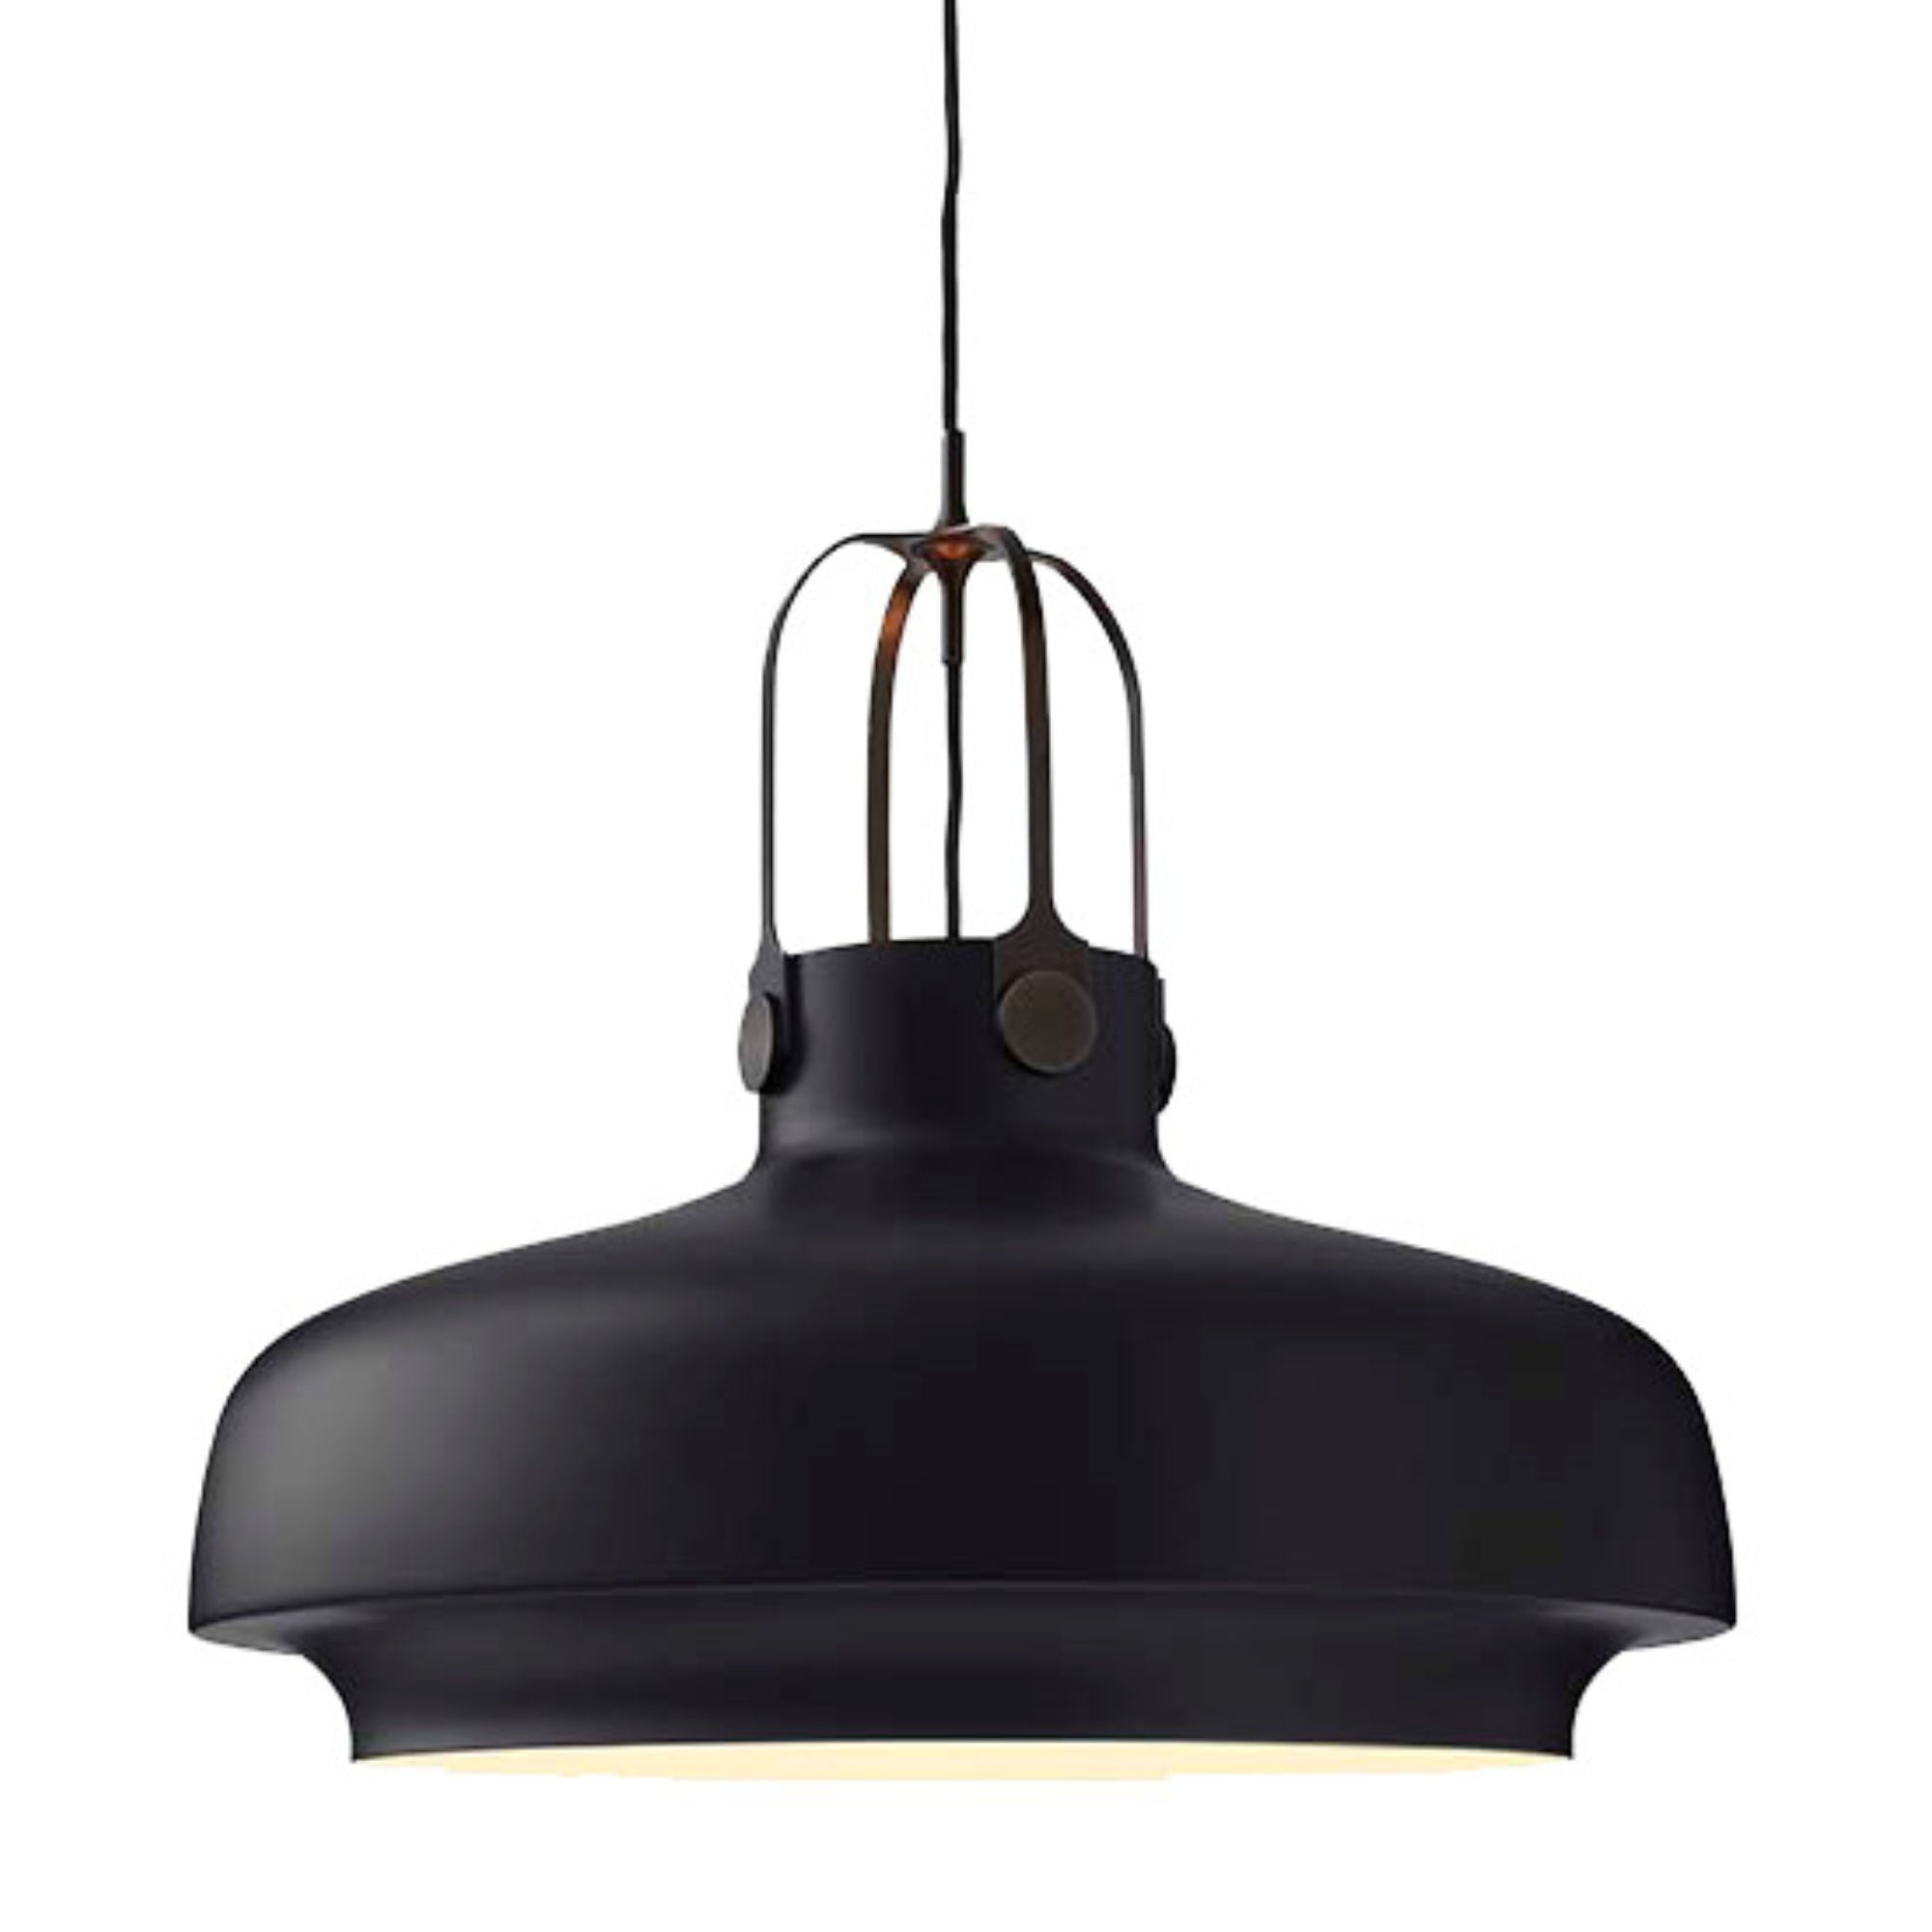 &Tradition SC8 Copenhagen pendant light, matt black - bronzed brass suspension